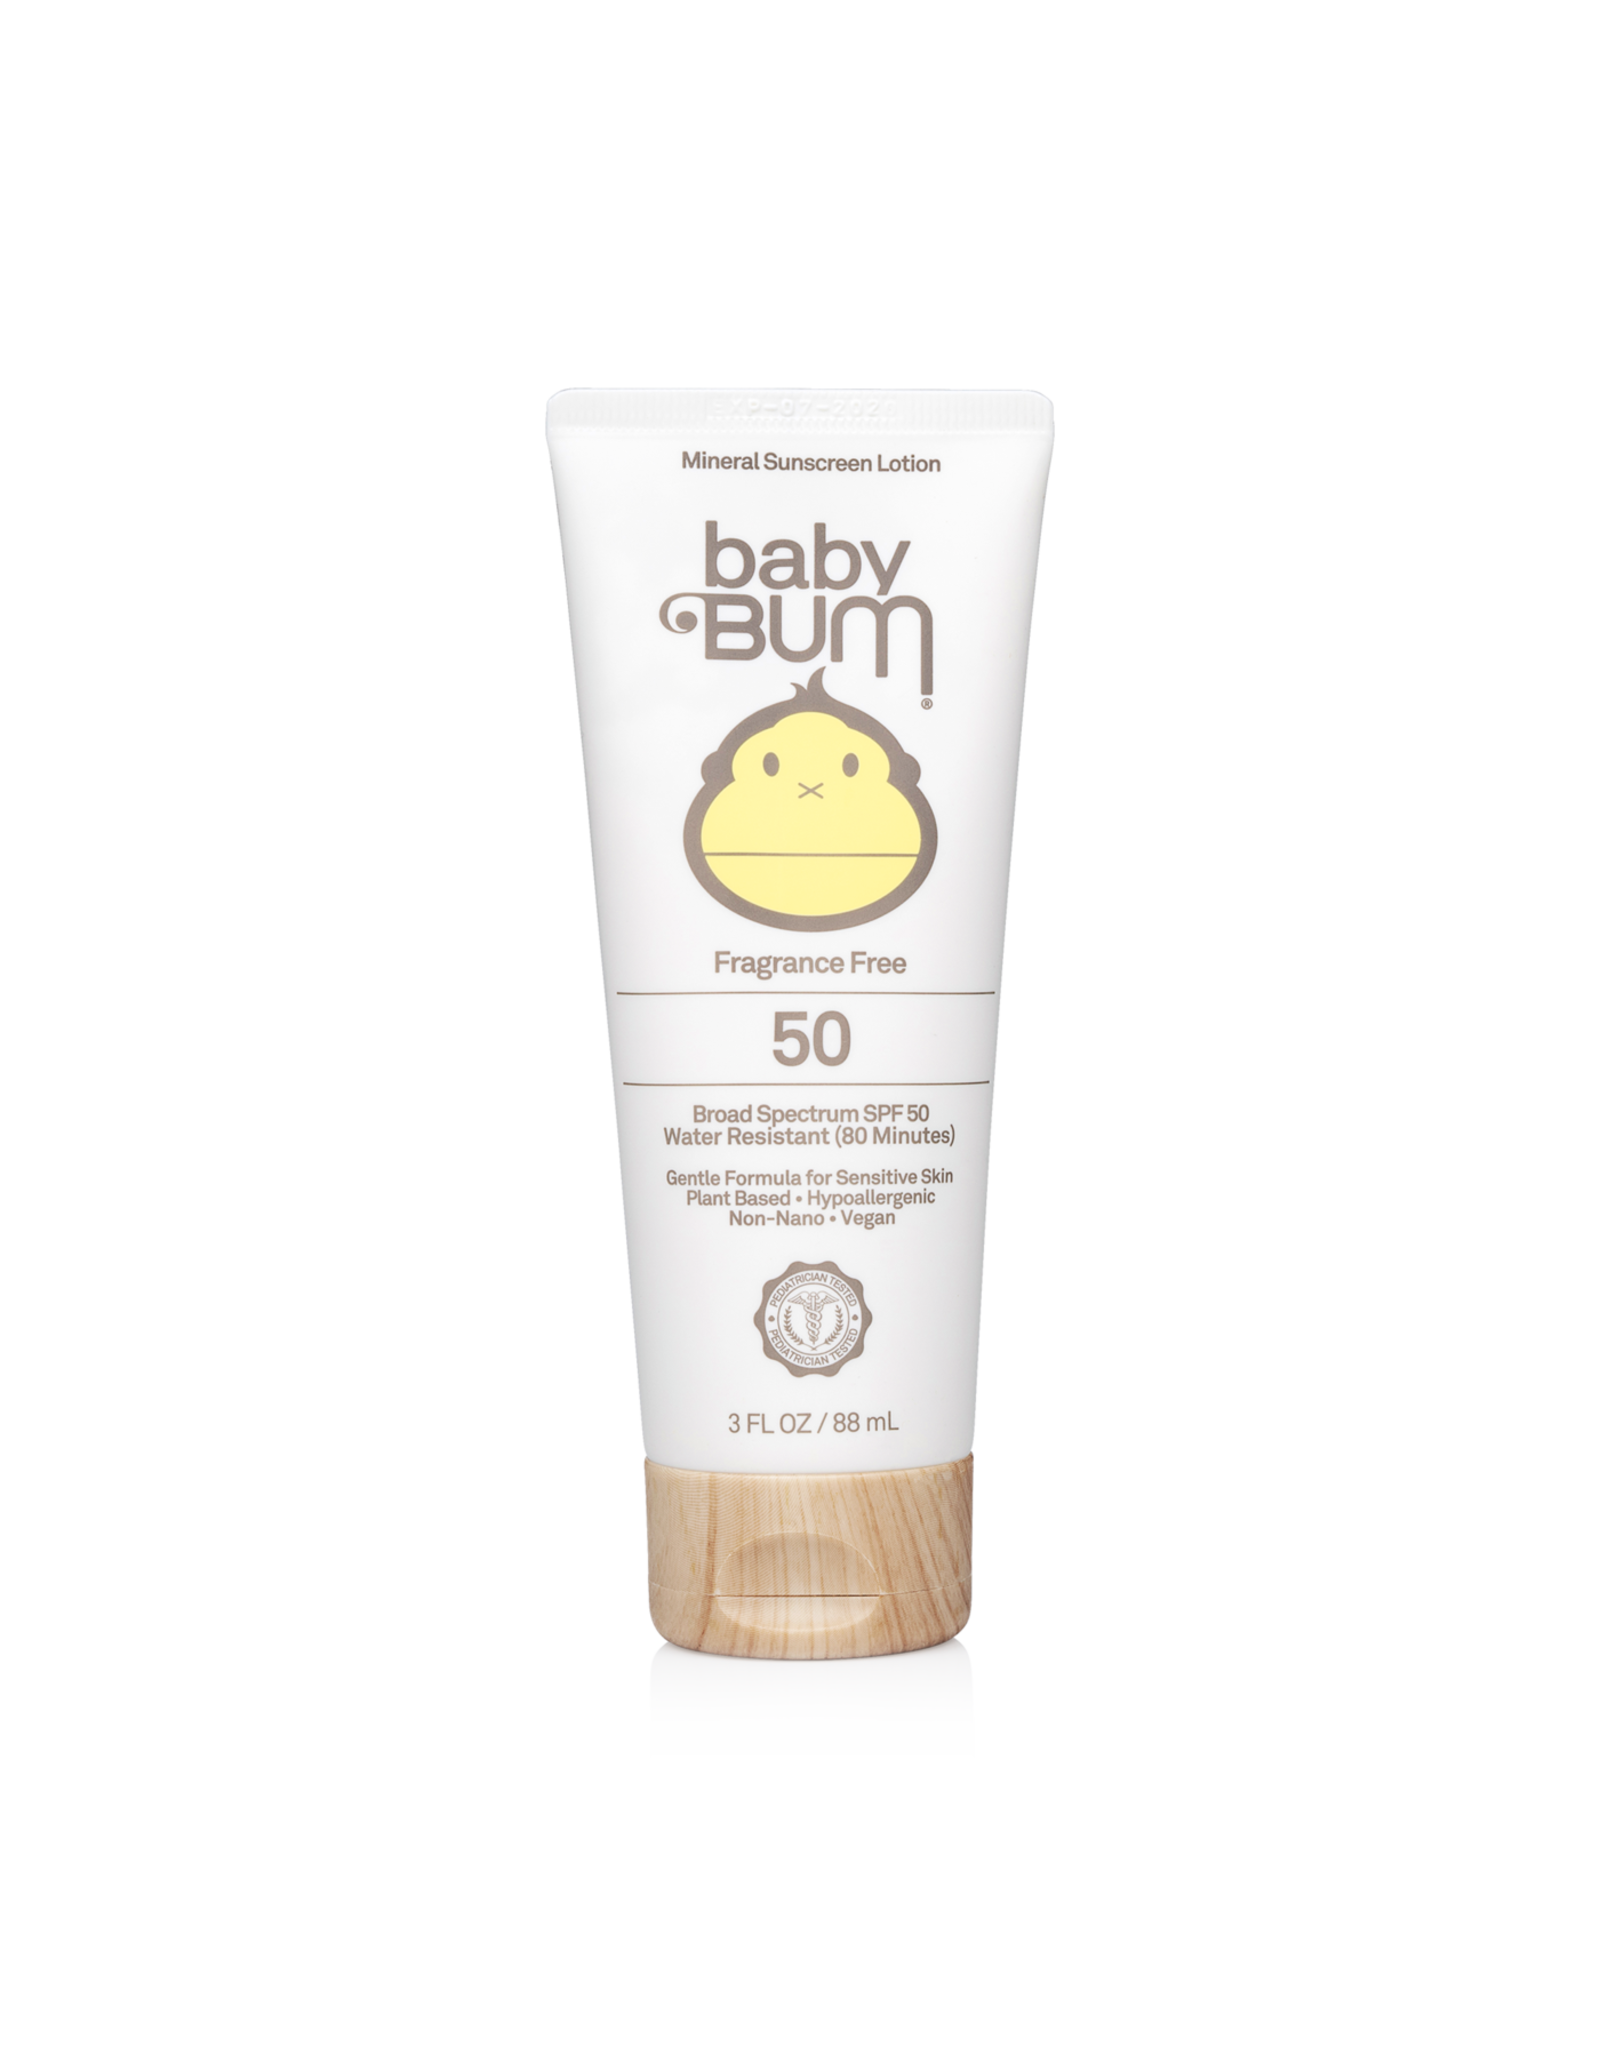 sunbum Baby 50 sunscreen